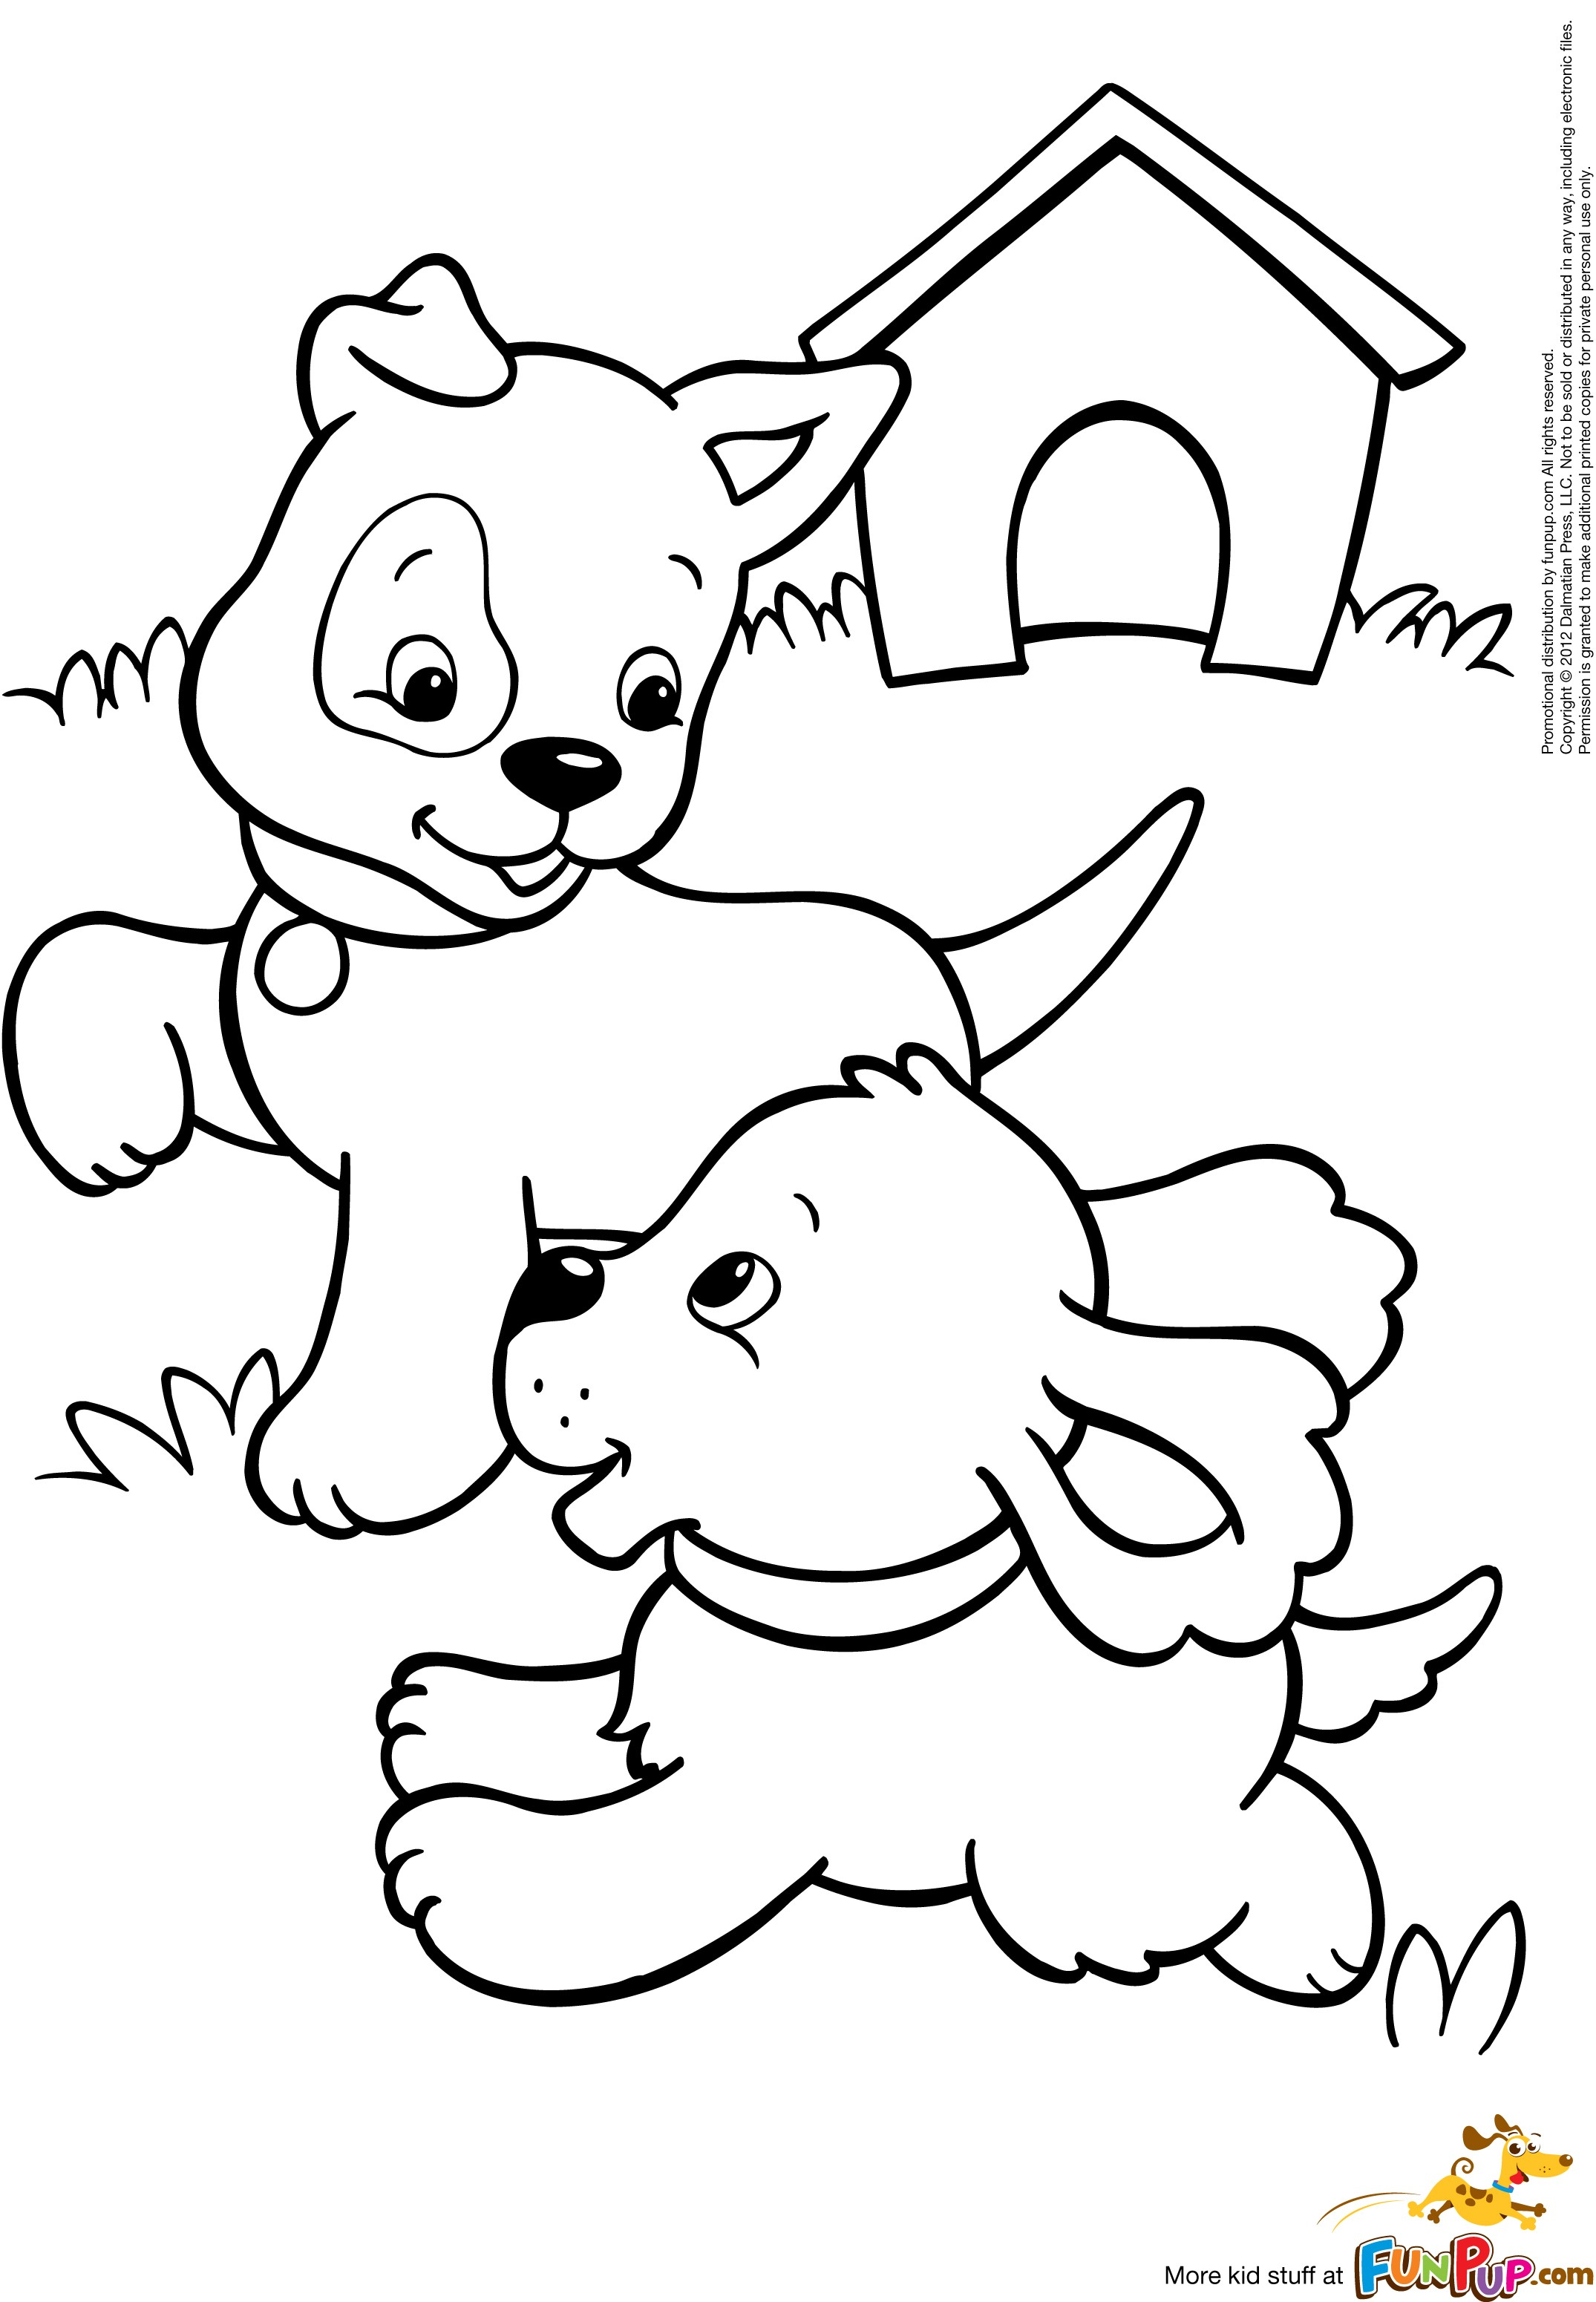 2150x3101 New Coloring Pages Of Cute Dogs And Puppies Pu